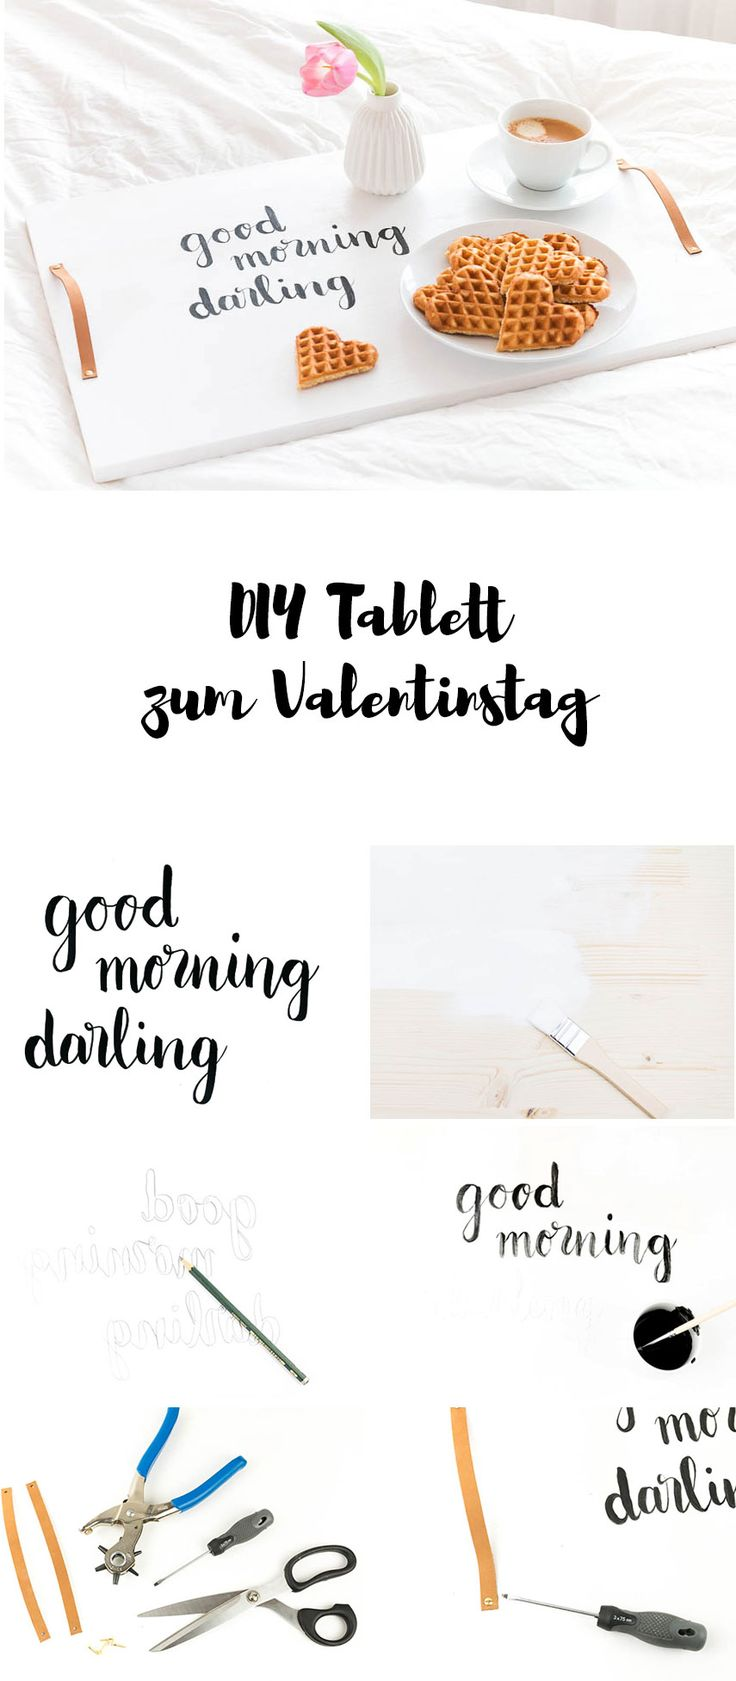 154 best valentinstag images on pinterest beauty tutorials make up tips and make up tricks. Black Bedroom Furniture Sets. Home Design Ideas